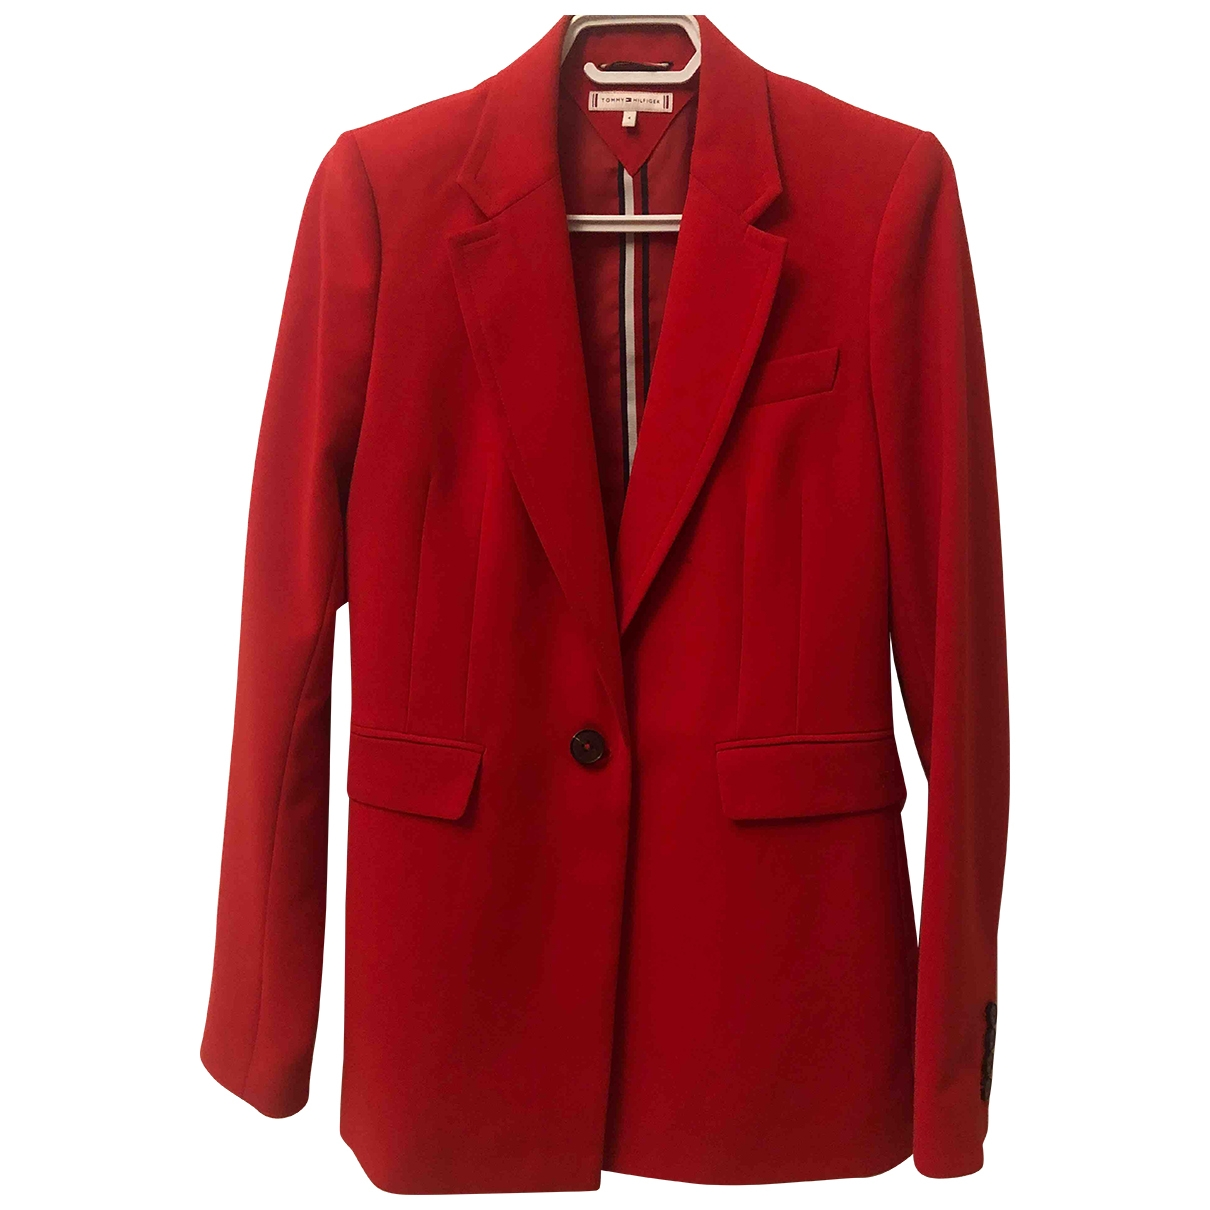 Tommy Hilfiger \N Jacke in  Rot Polyester